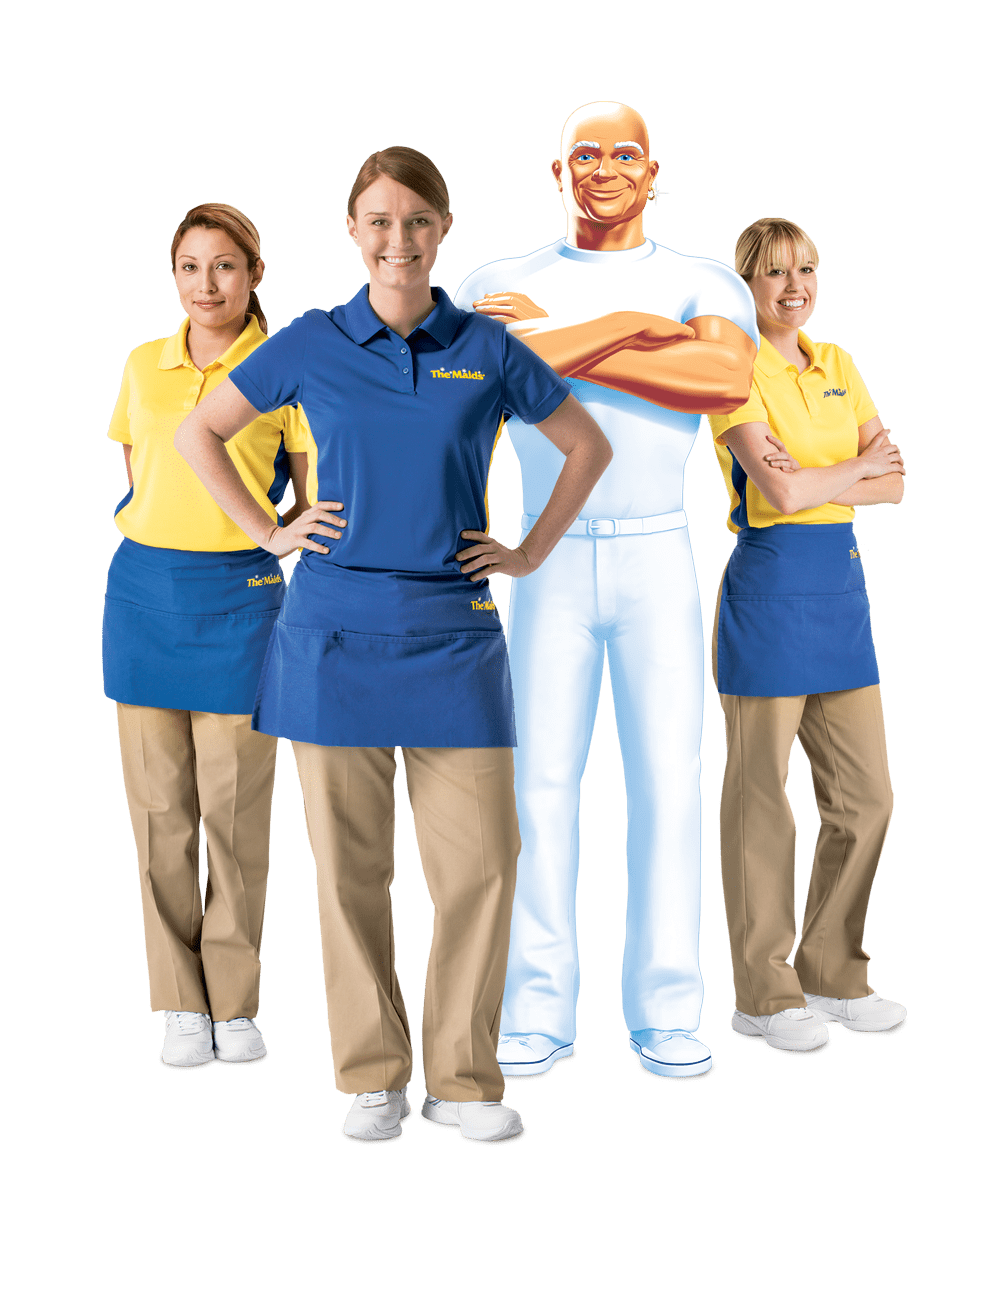 The Maids House Cleaning - The Maids in Scottsdale Home Cleaning